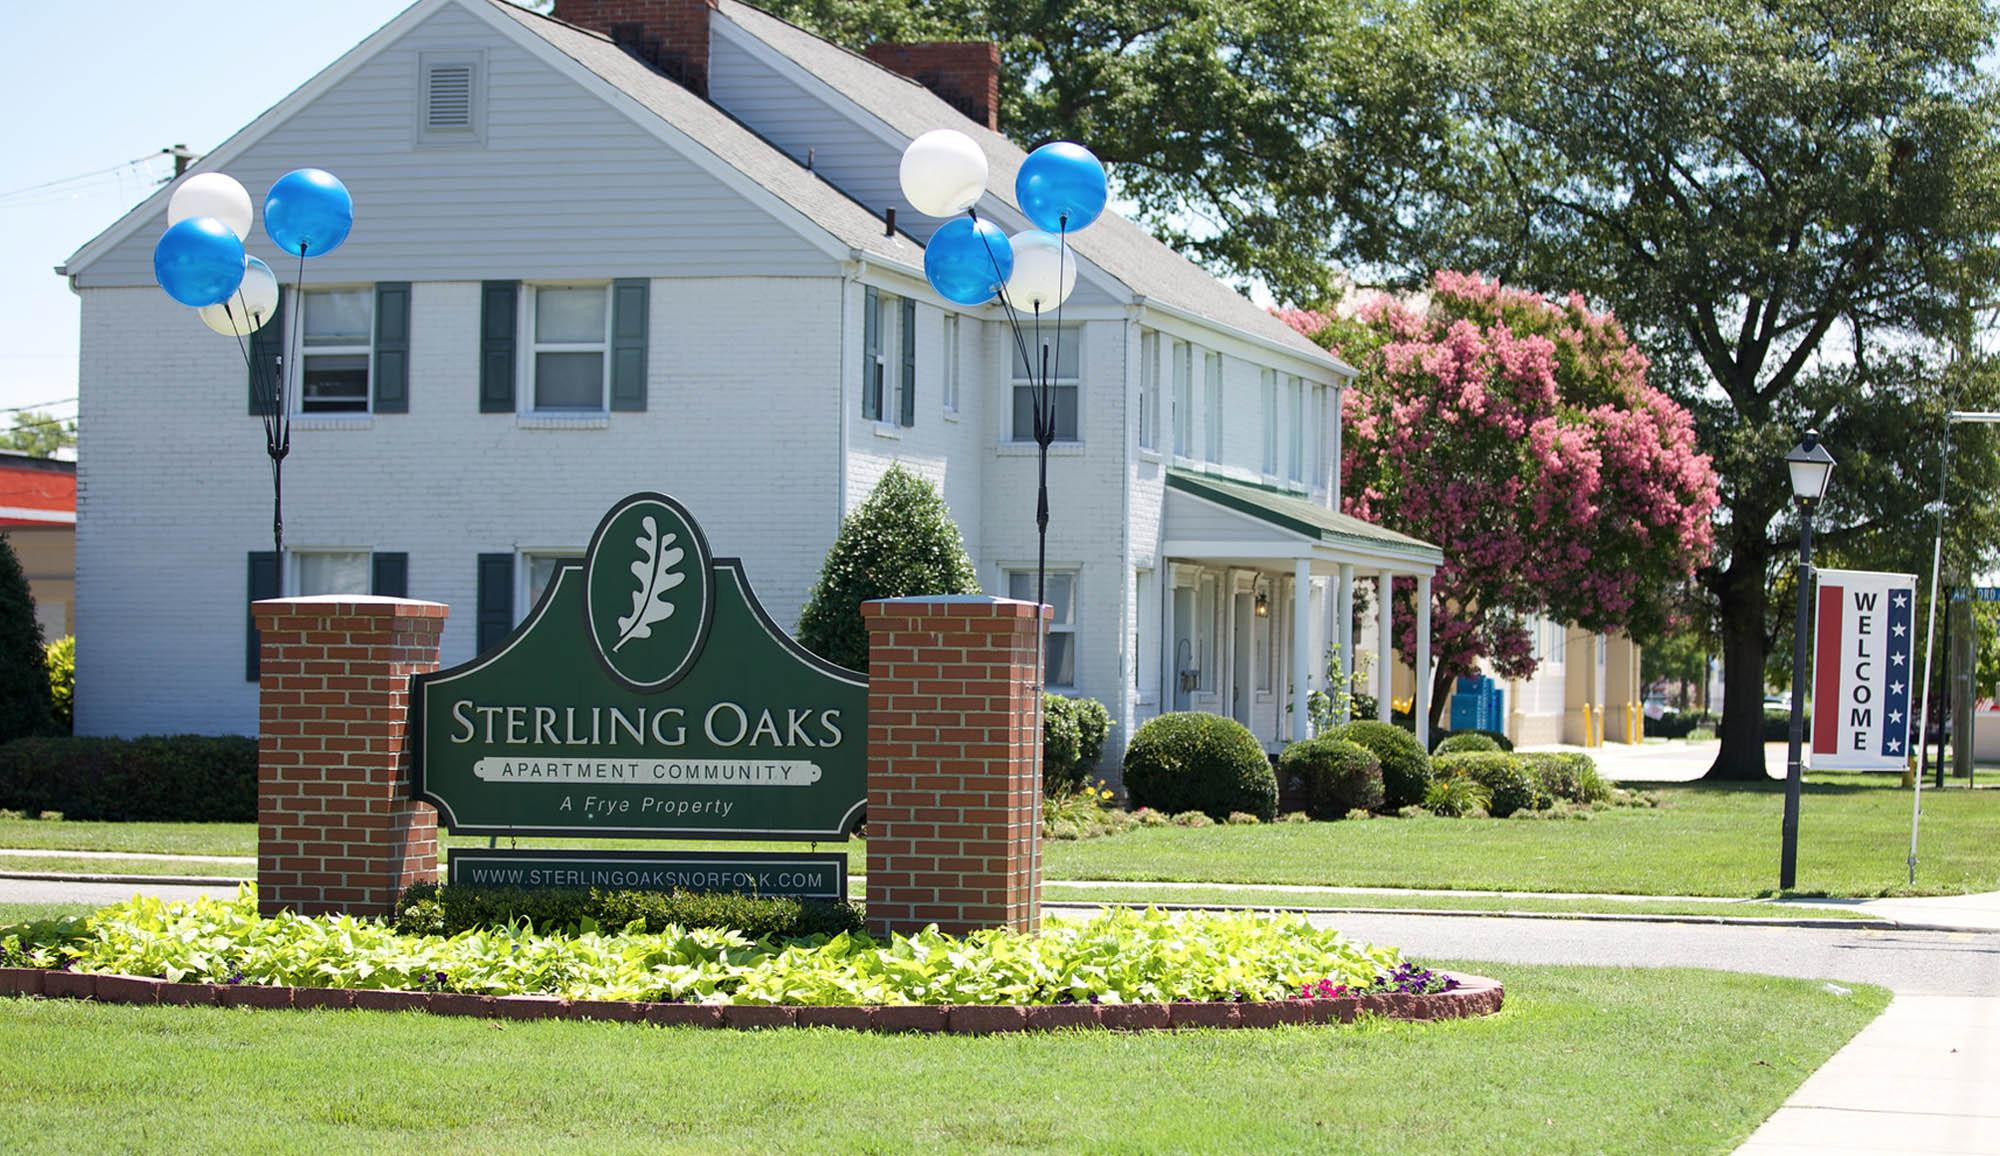 sterling-oaks-slide-1-1